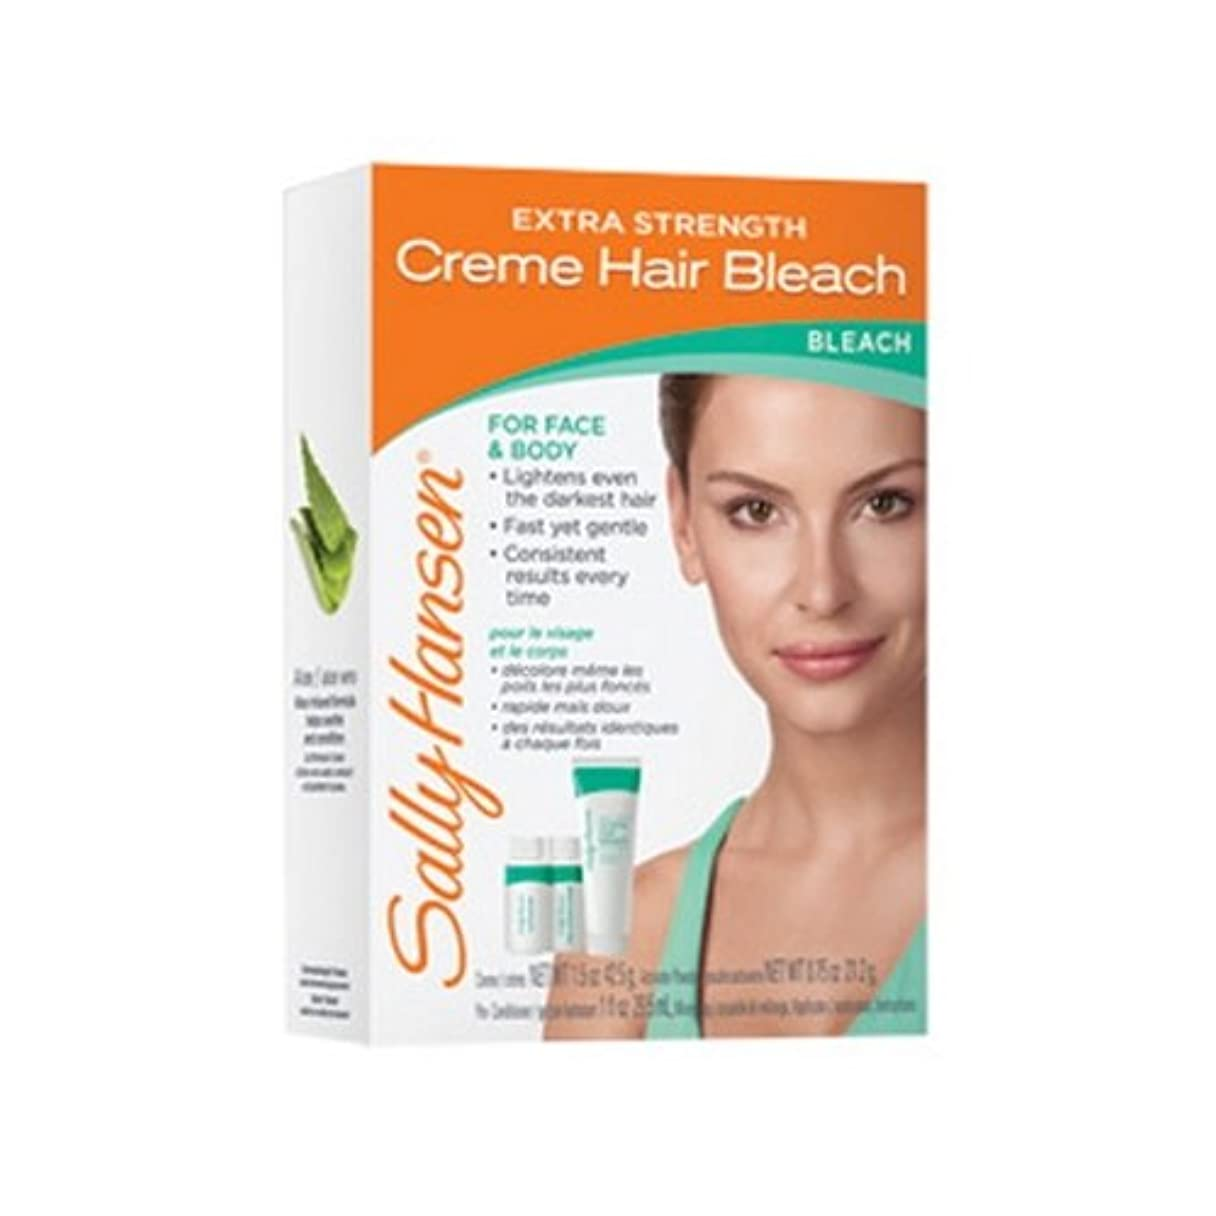 ハウスリボンクリエイティブSALLY HANSEN Extra Strength Creme Hair Bleach for Face & Body - SH2010 (並行輸入品)